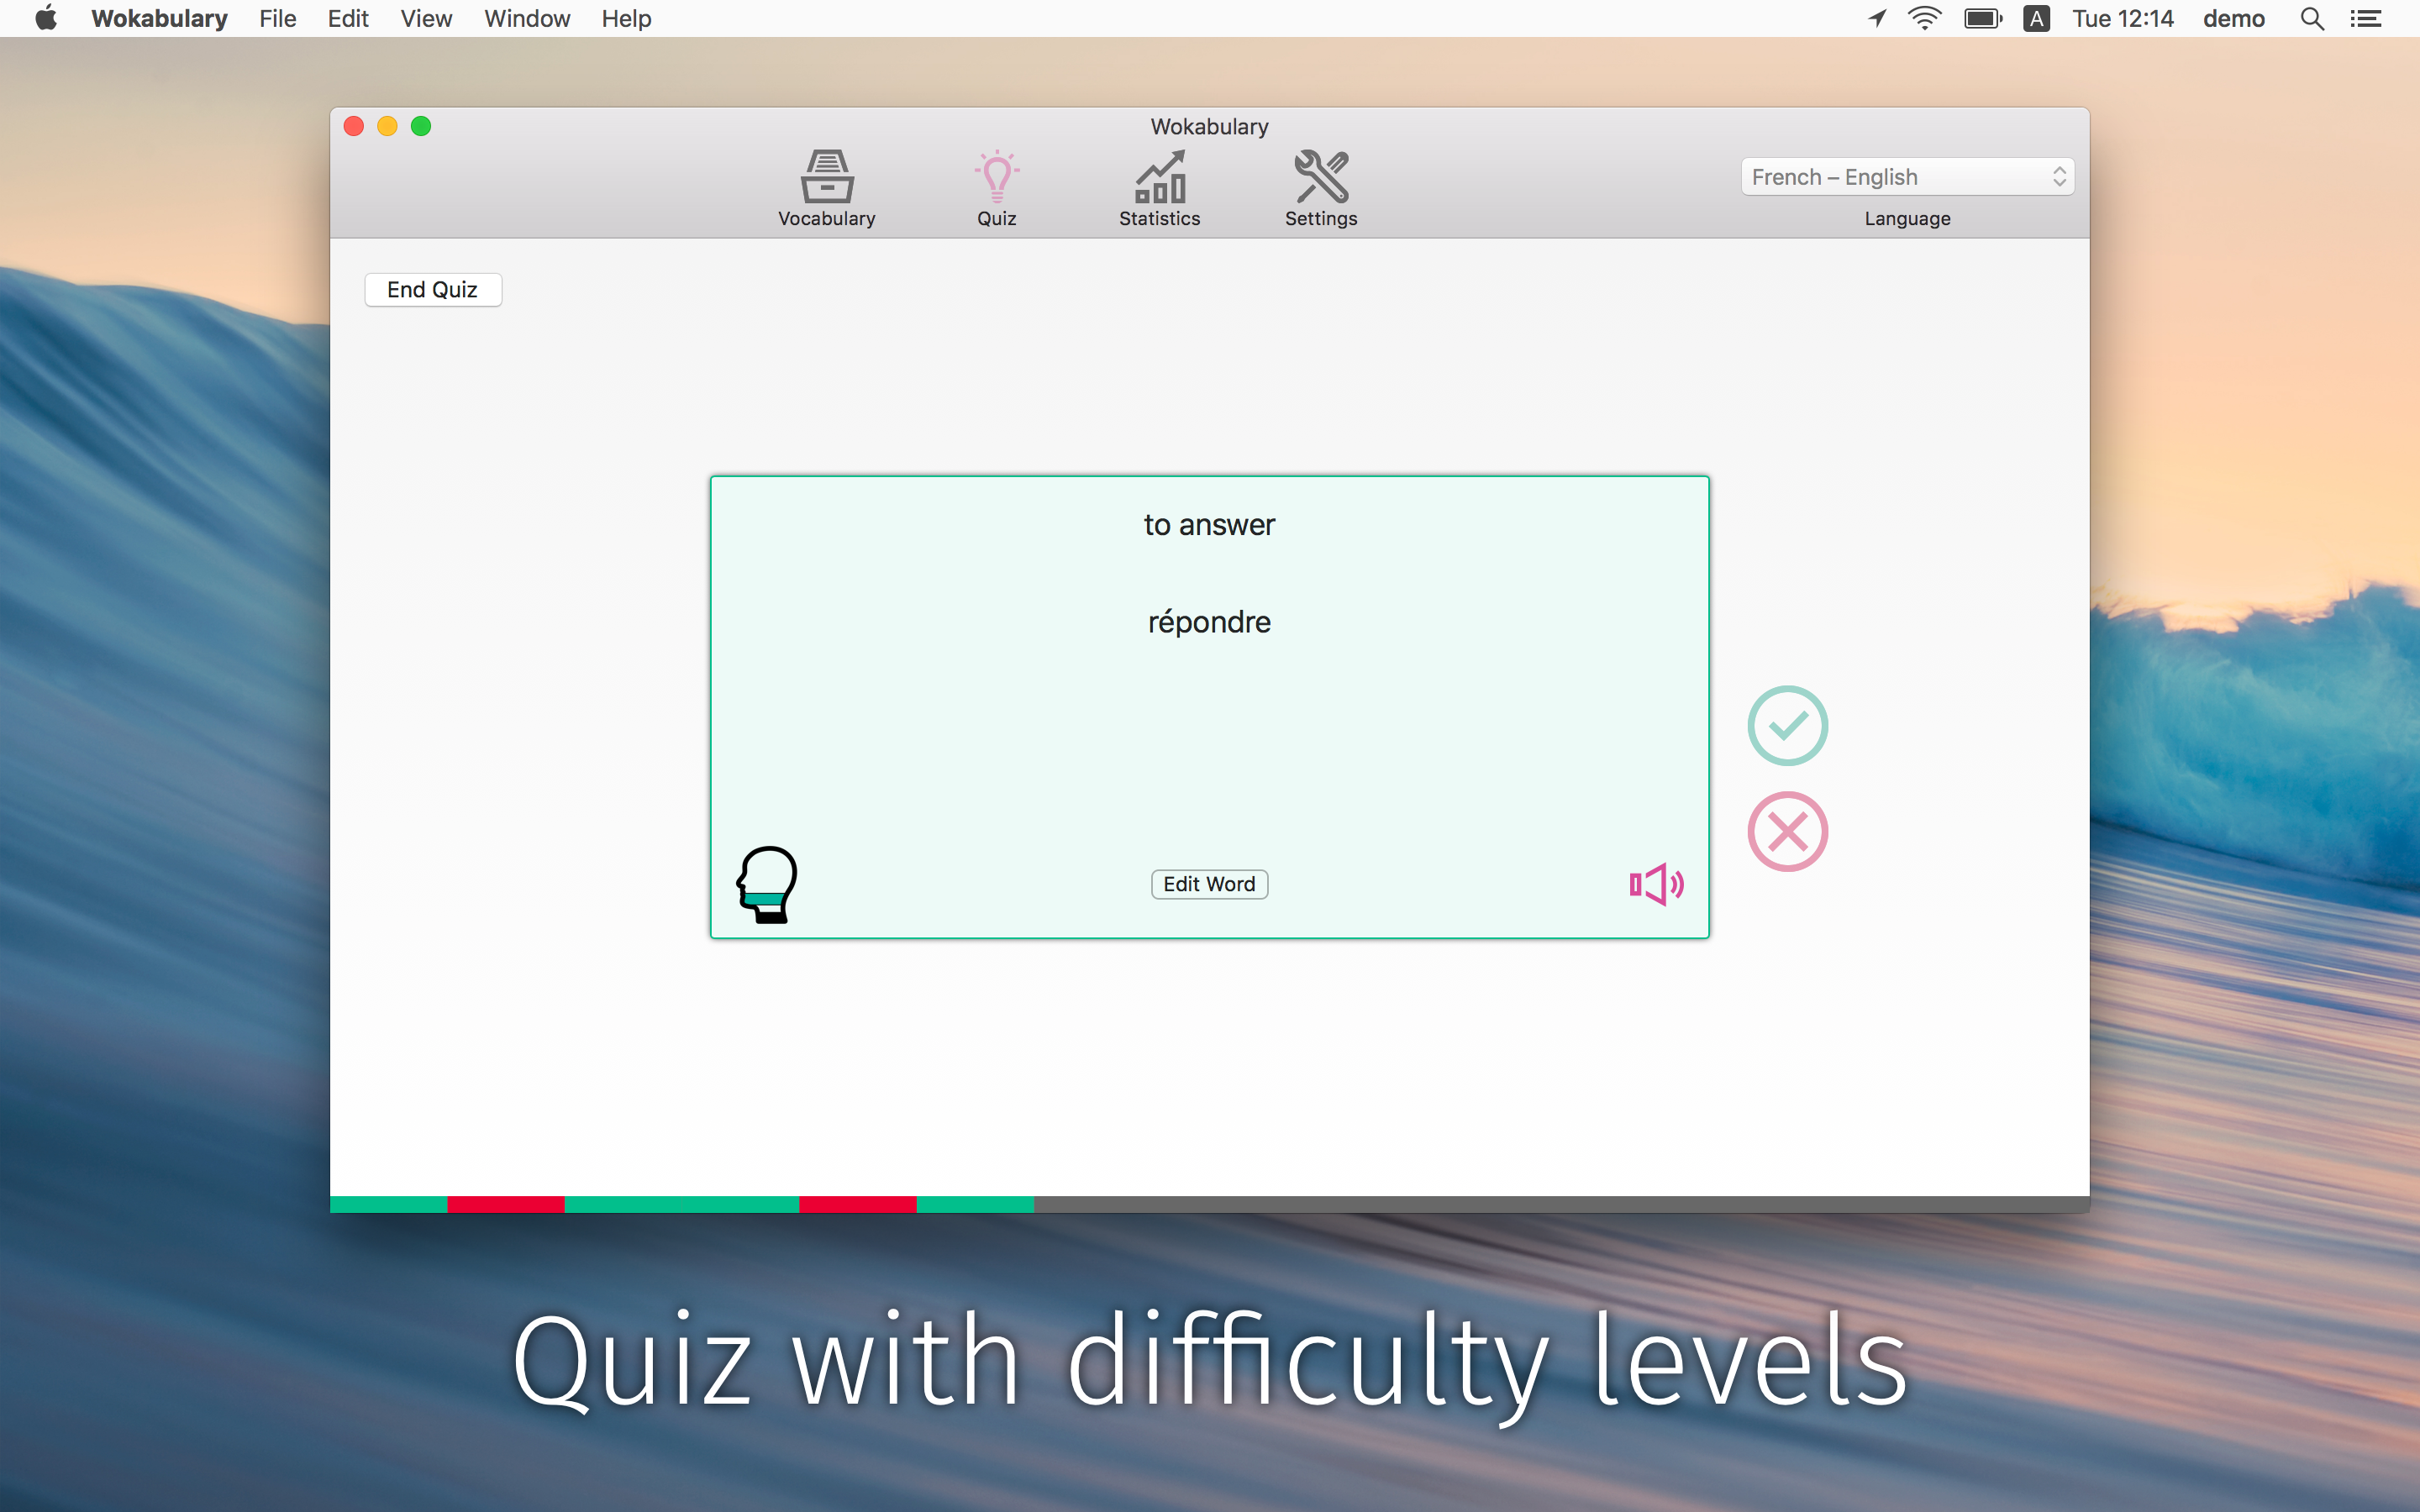 Use quiz modes to practice your words according to your individual learning preferences.